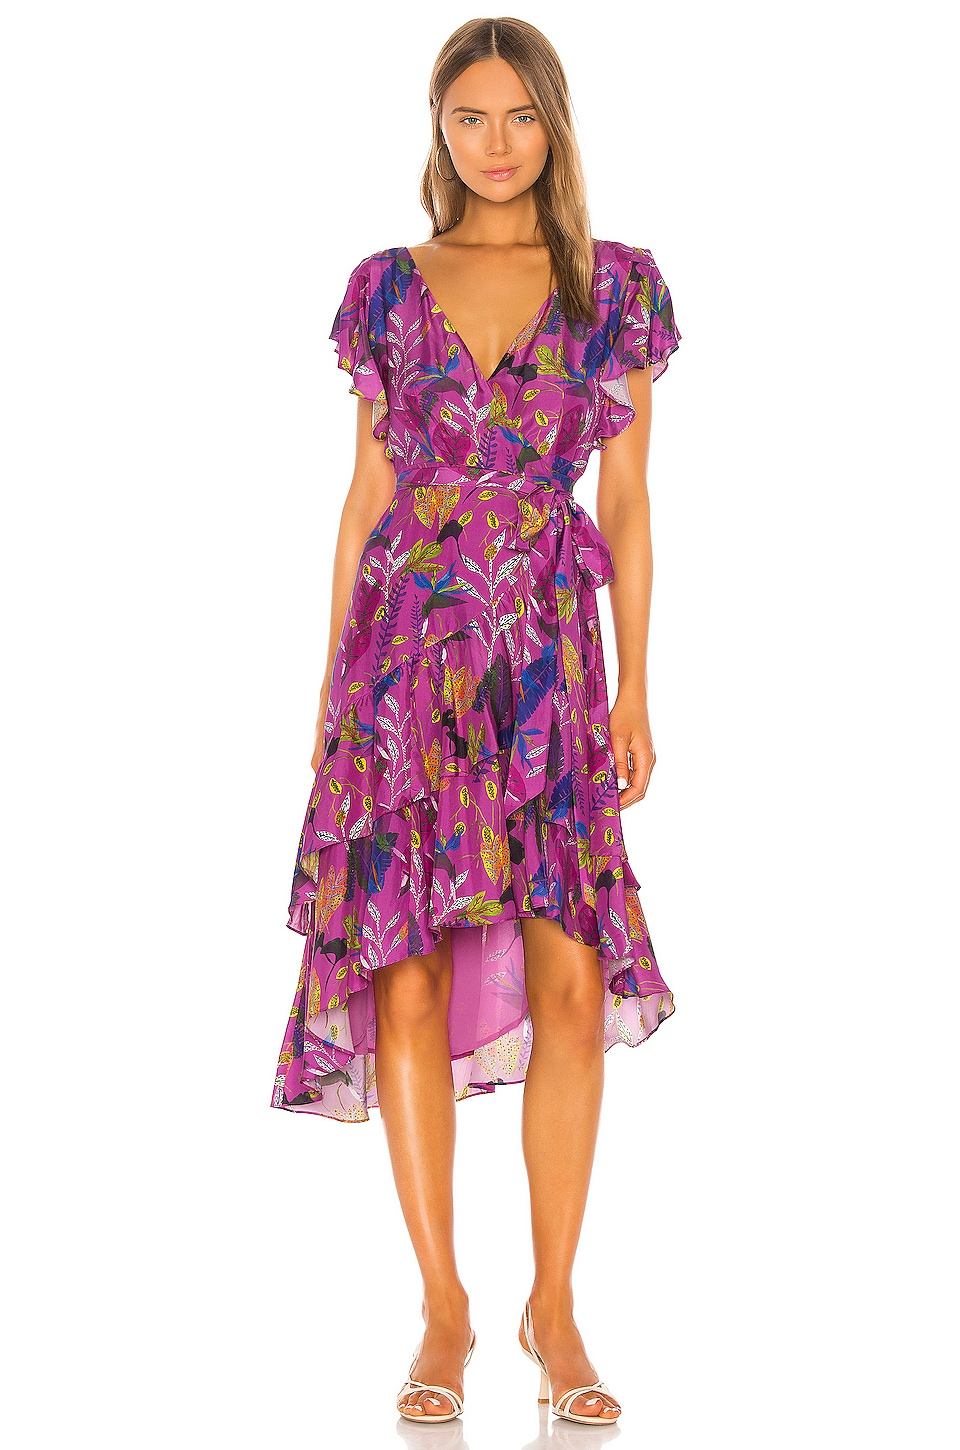 Tanya Taylor Dita Dress in Jungle Leaves & Purple